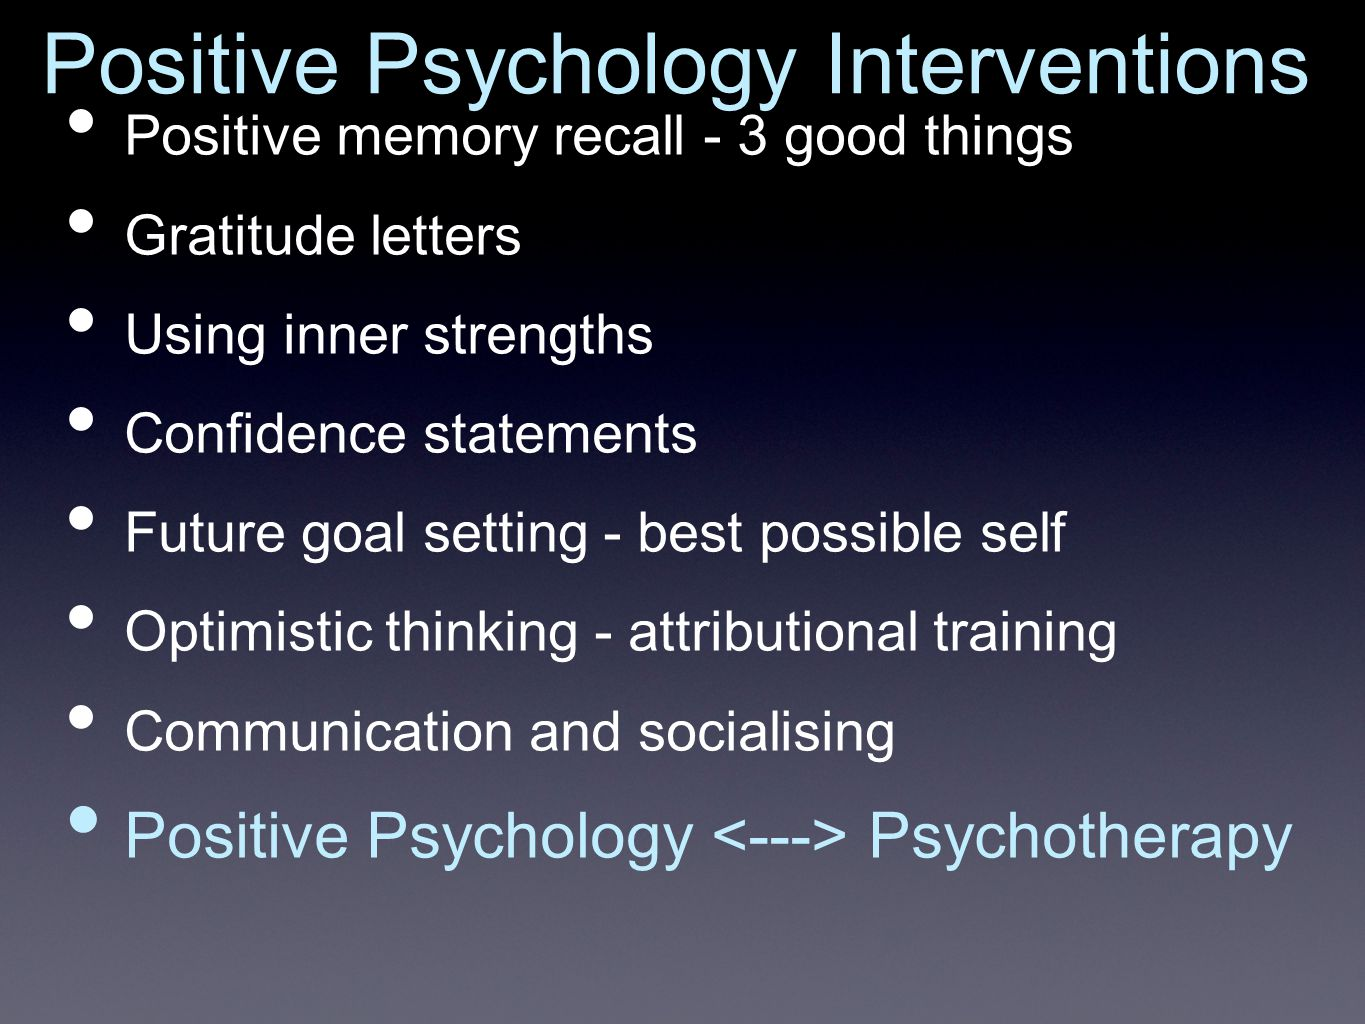 Positive Psychology Interventions Positive memory recall - 3 good things Gratitude letters Using inner strengths Confidence statements Future goal setting - best possible self Optimistic thinking - attributional training Communication and socialising Positive Psychology Psychotherapy